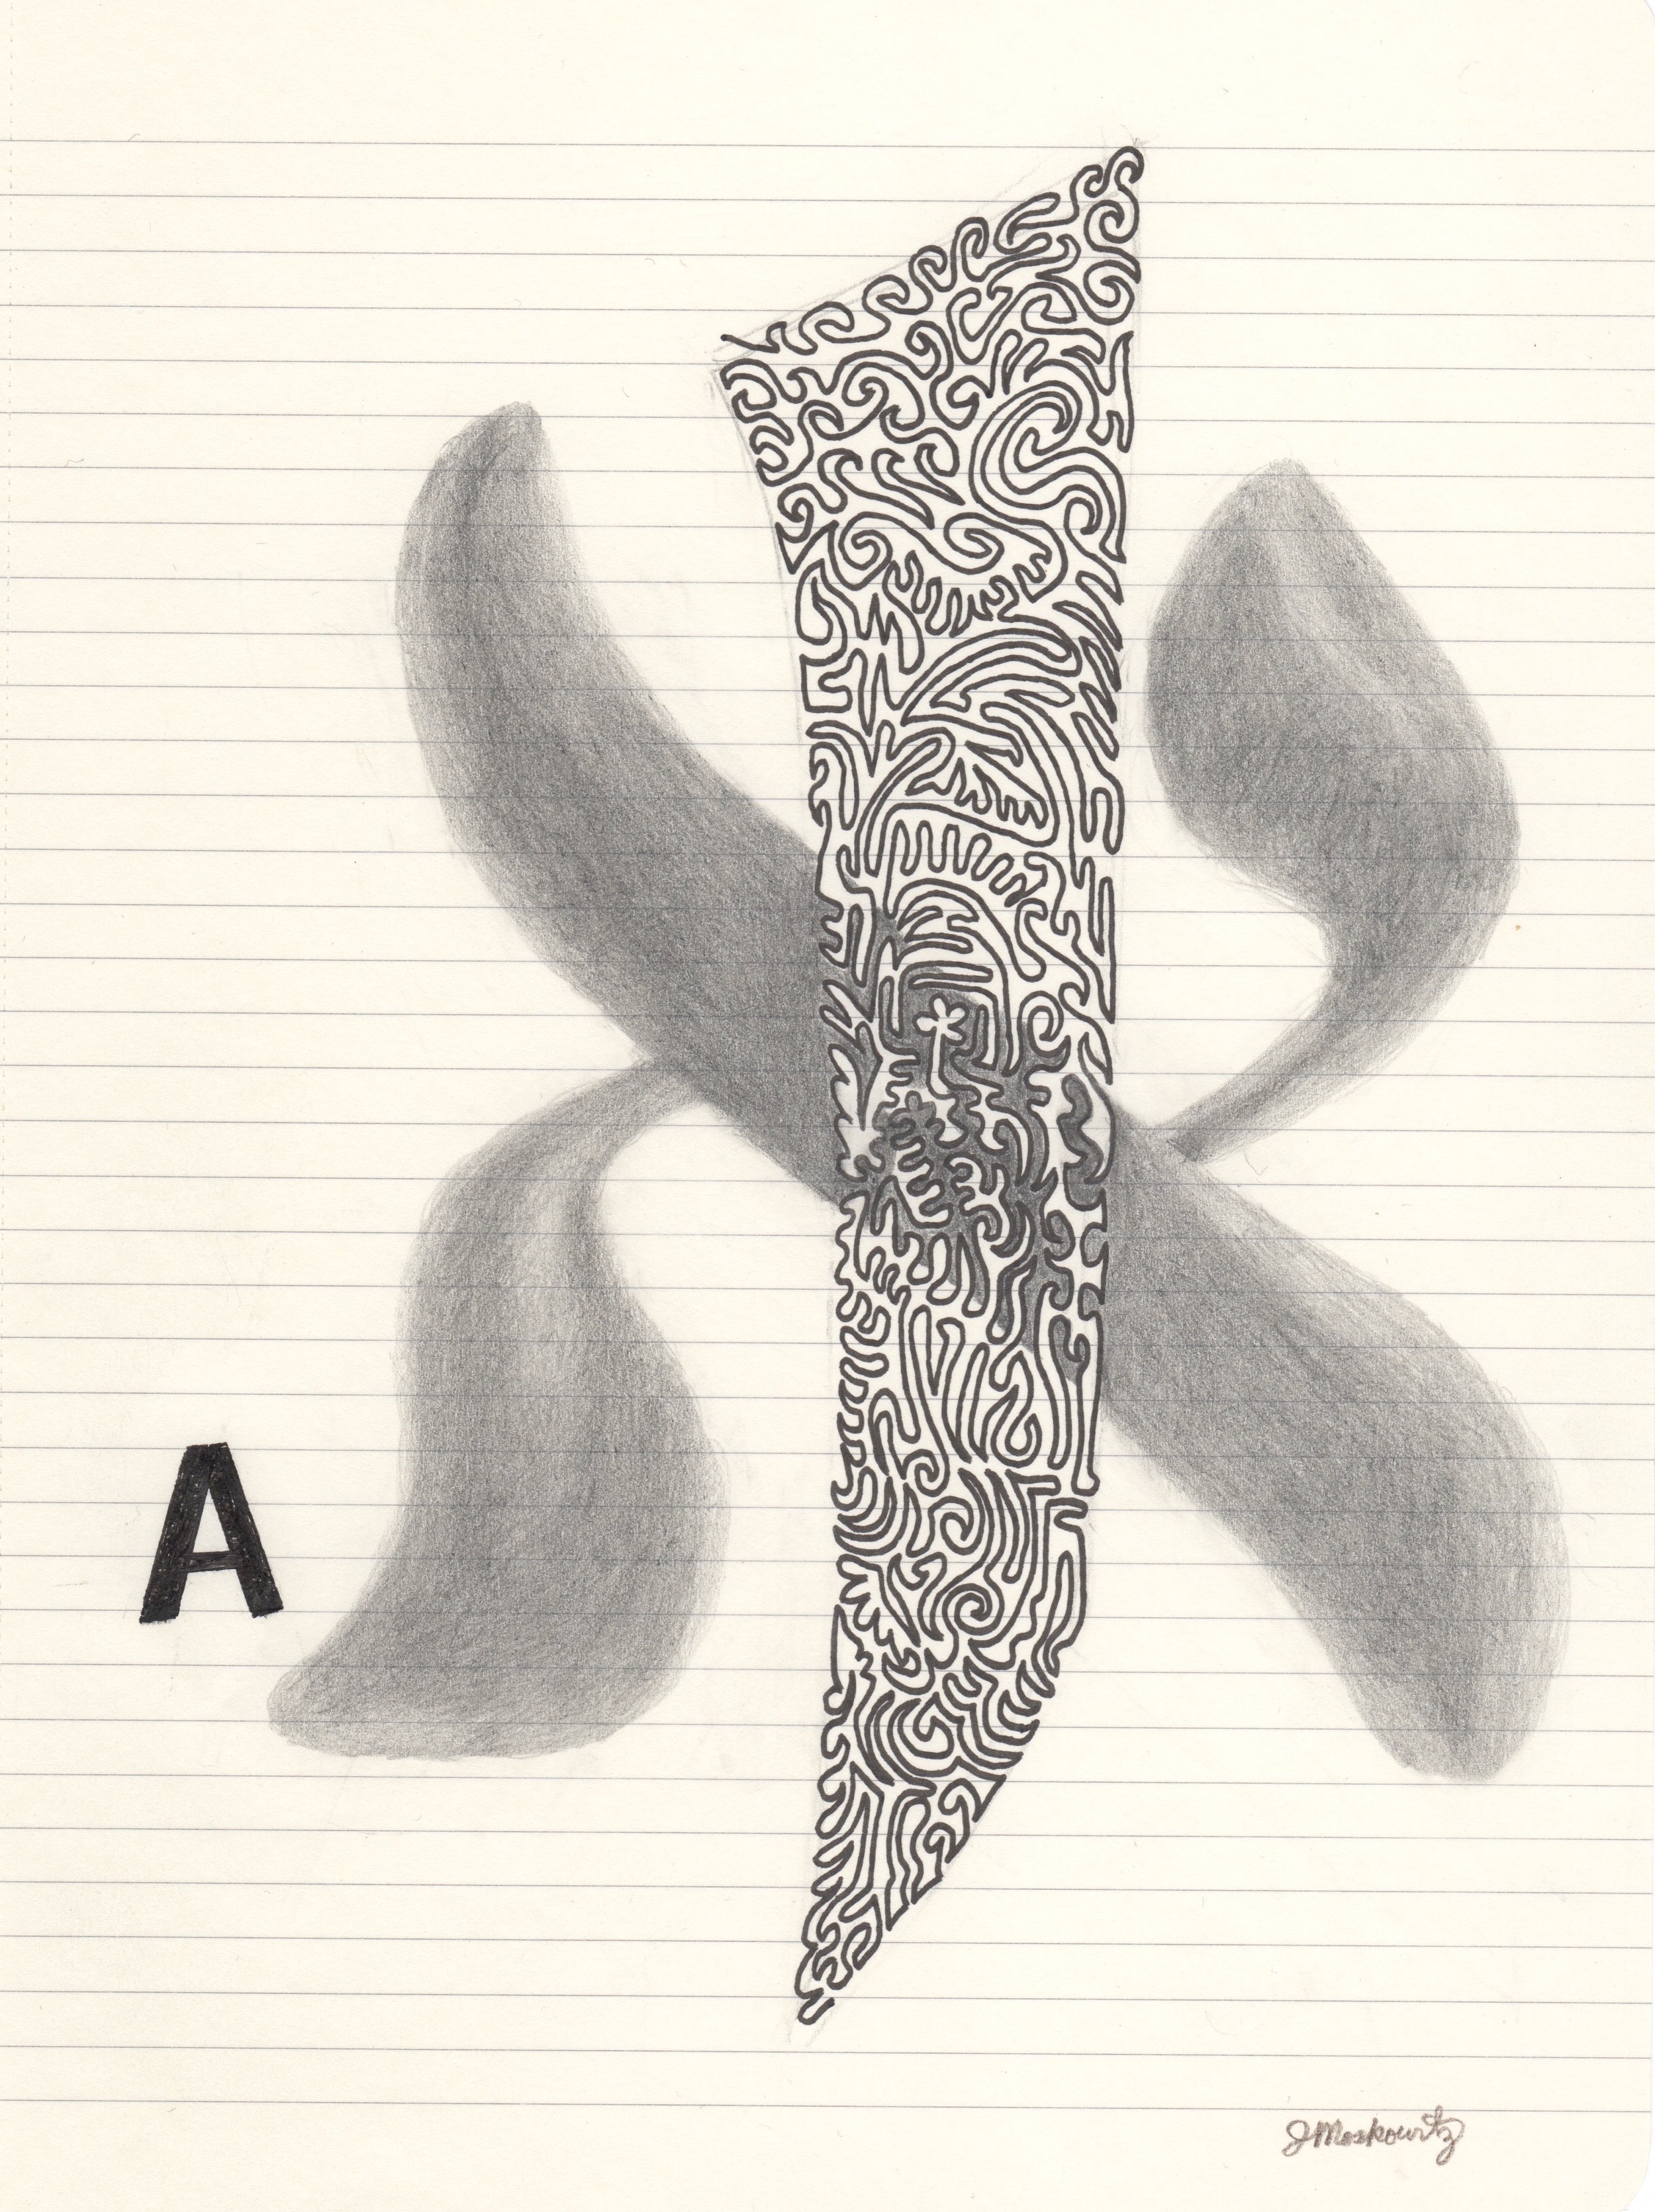 Joel Moskowitz,  Arabic  Alif  and Hebrew  Aleph,  with A,  Ink and pencil on paper, 10x8